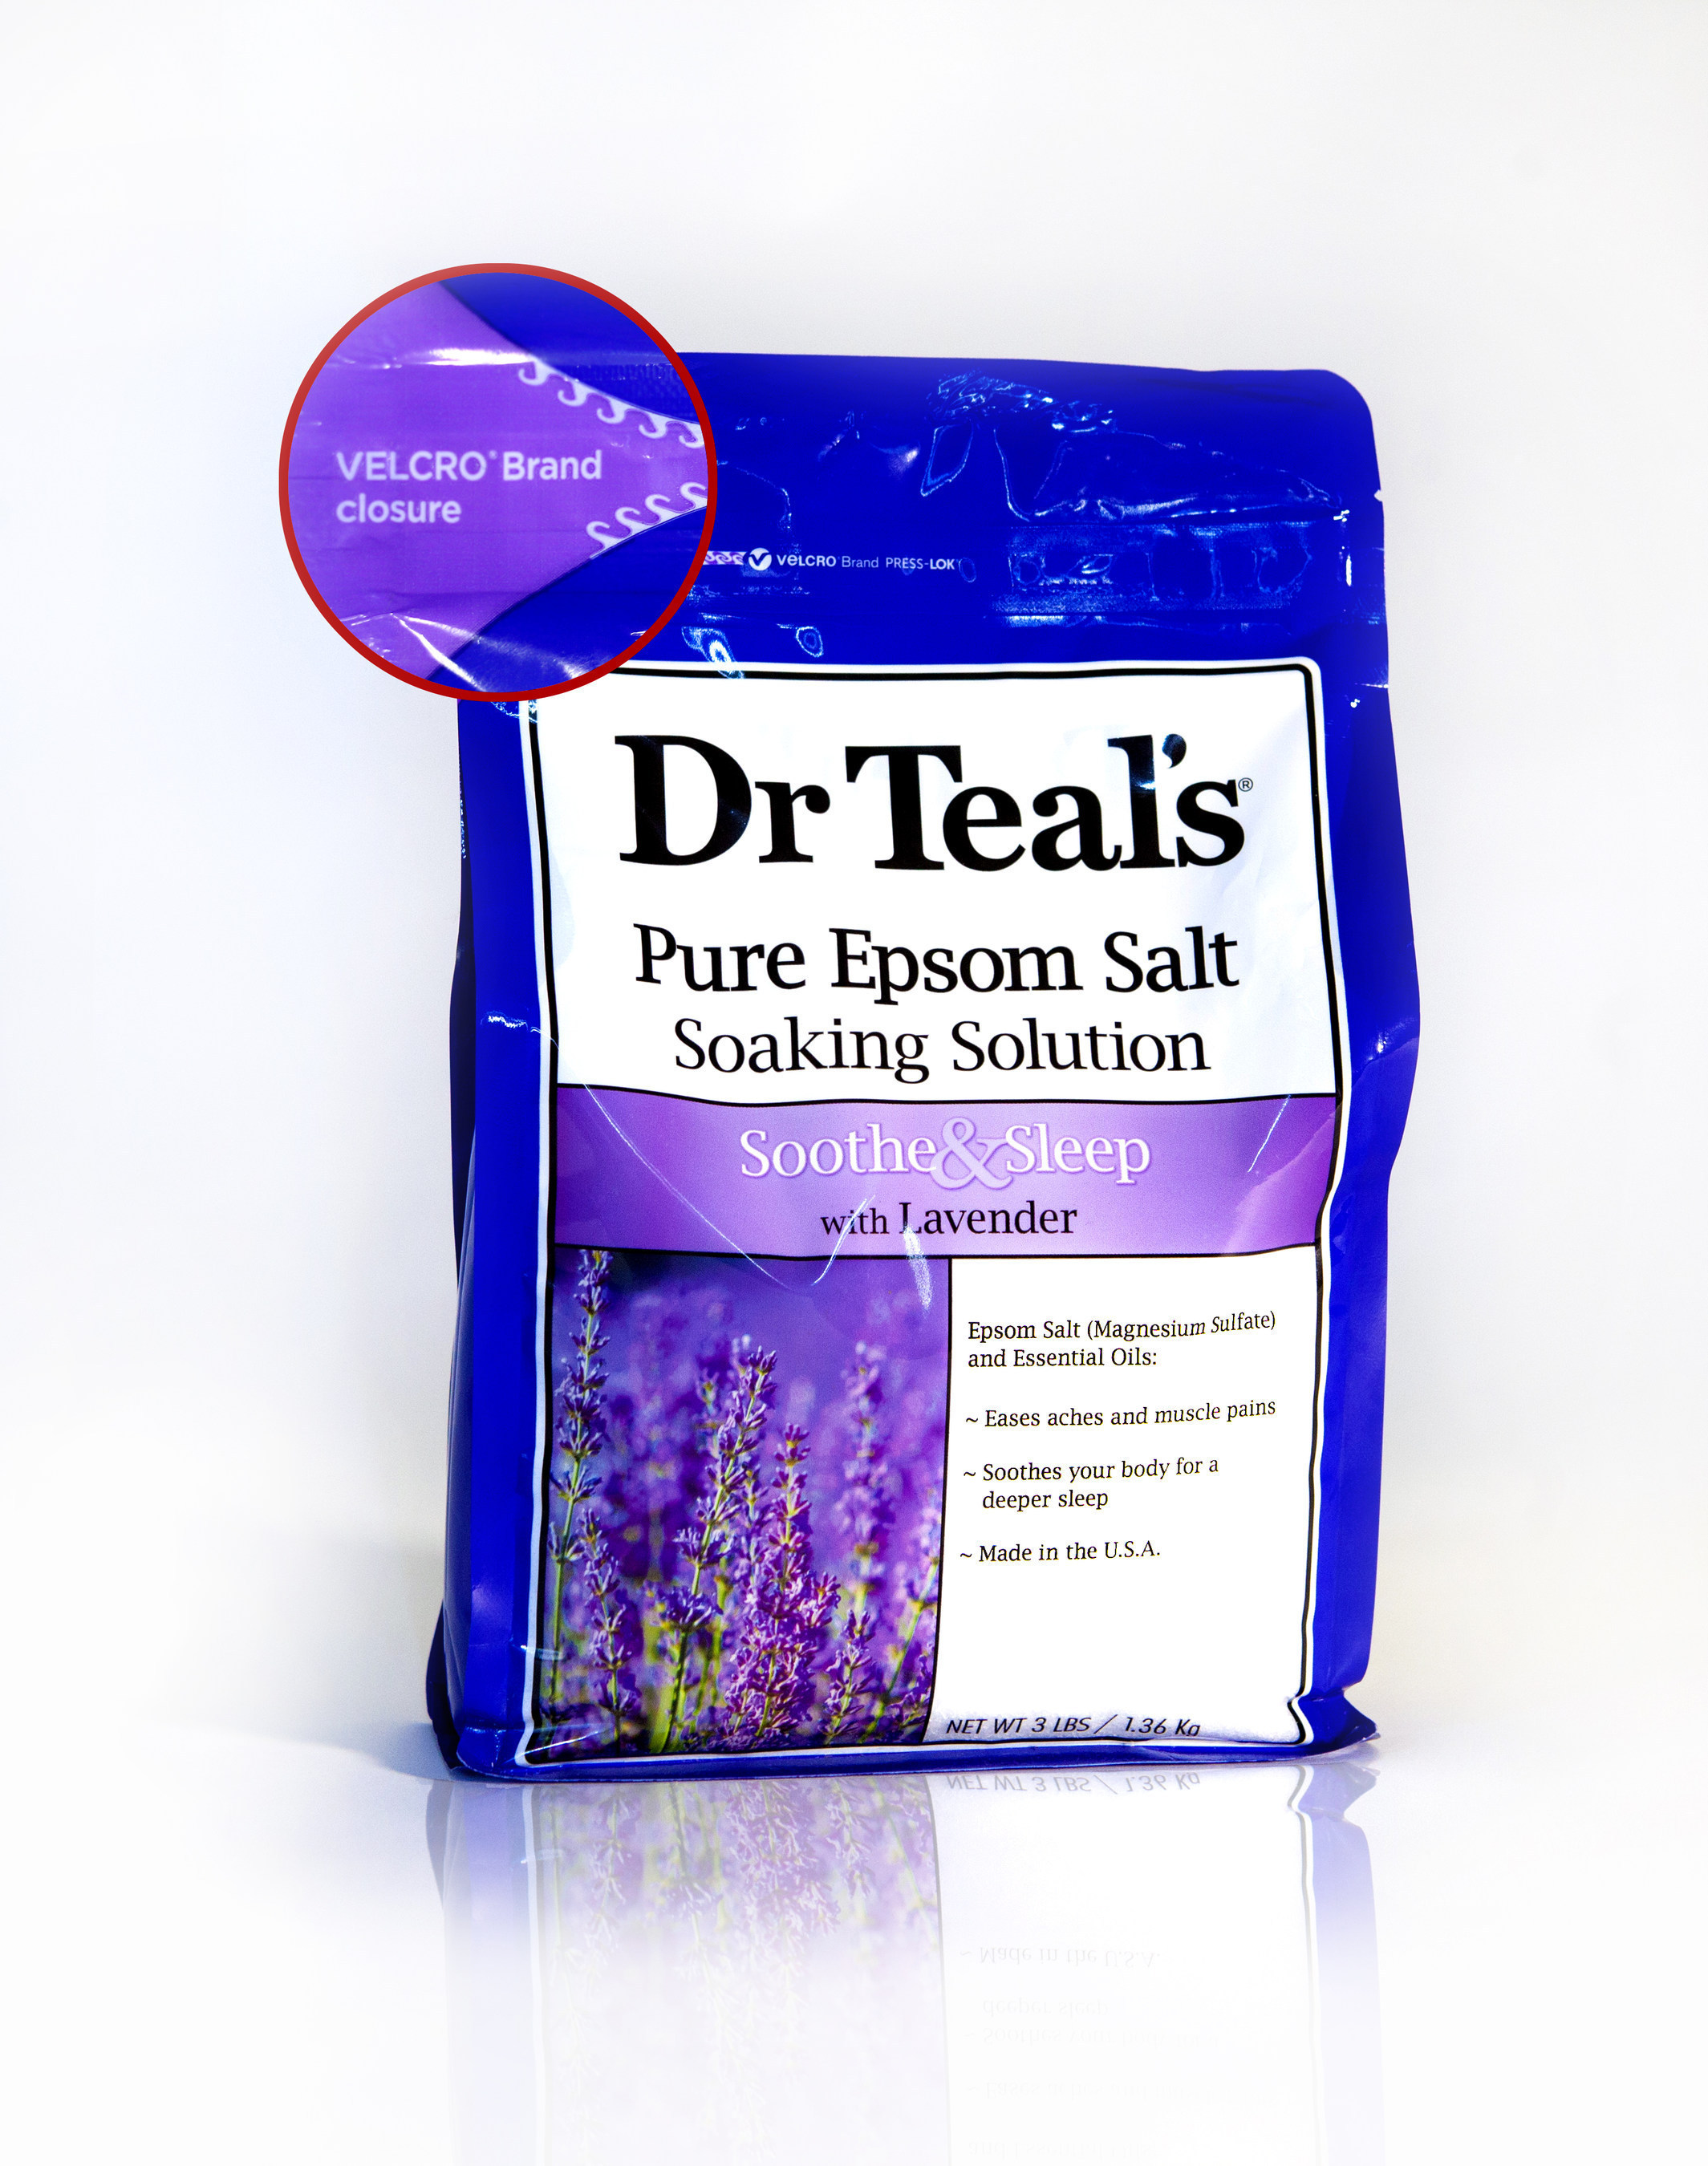 VELCRO(R) Brand PRESS-LOK(R) closure on Dr Teal's(R) Epsom Salt Soaking Solution bag. Available in the Bath section at mass market retailers nationwide.